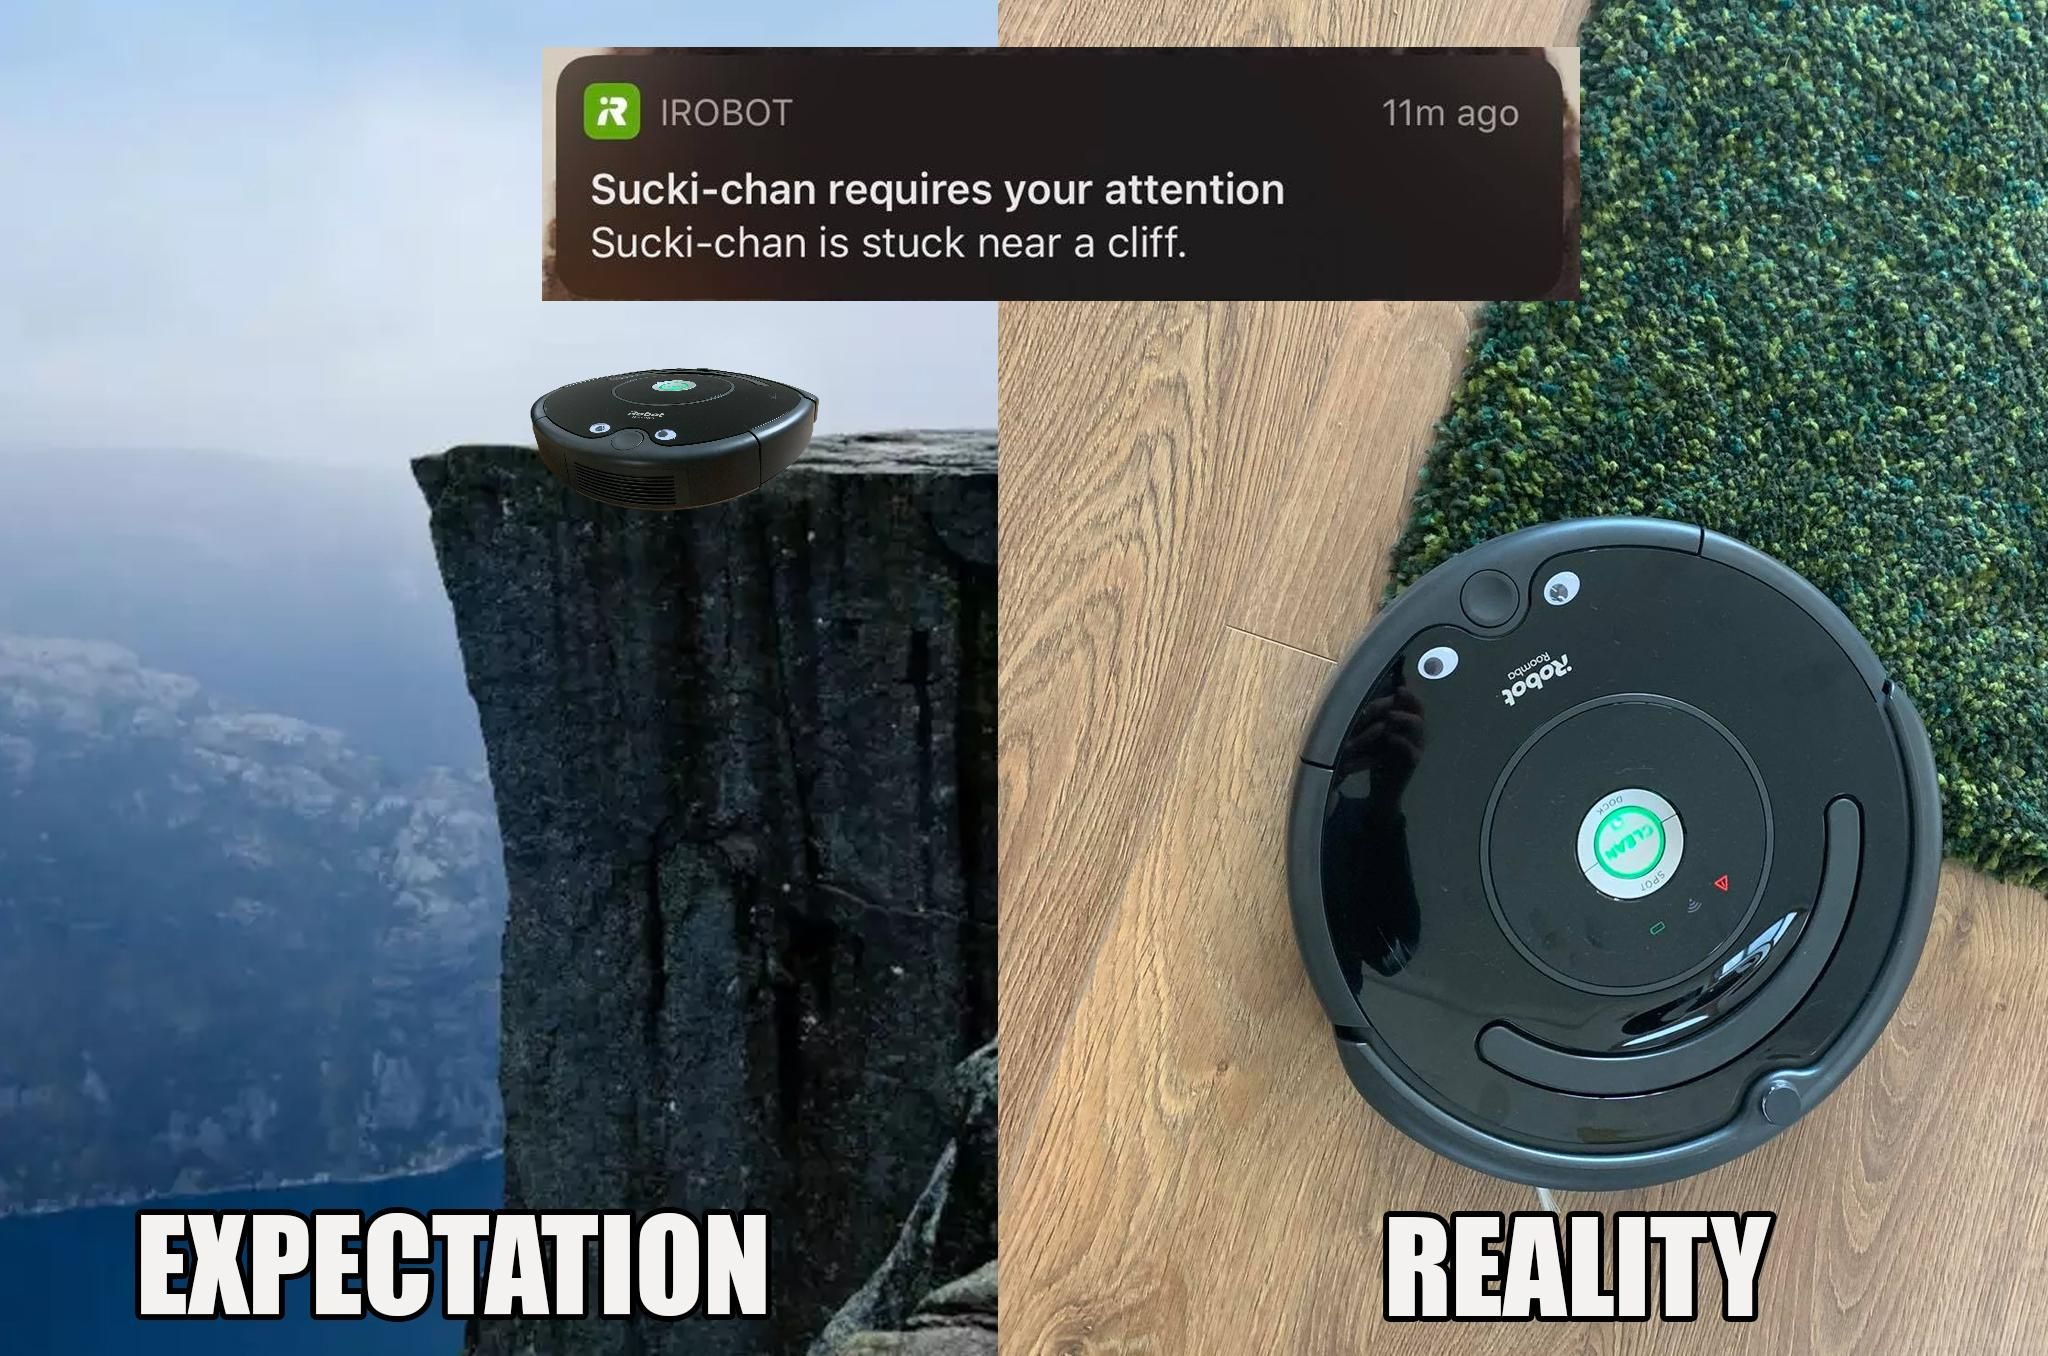 My roomba is suck near a cliff